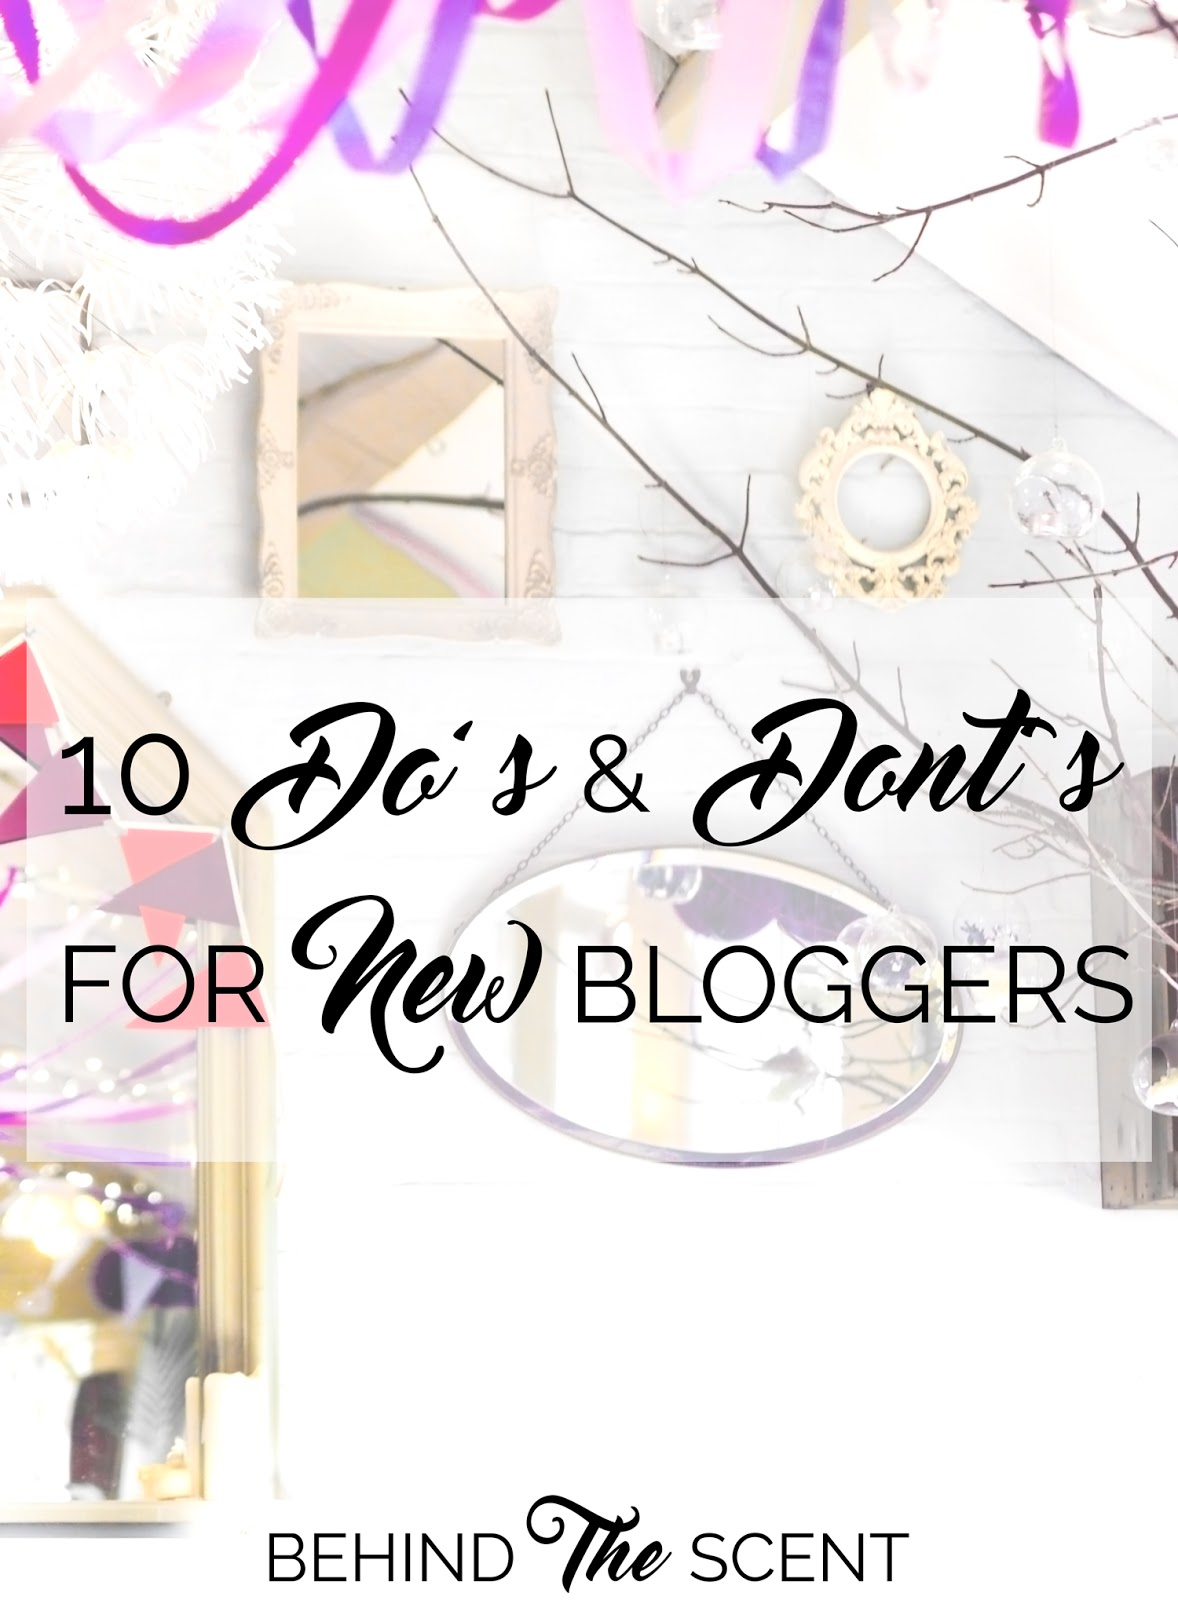 10 Do's & Don'ts for New Bloggers